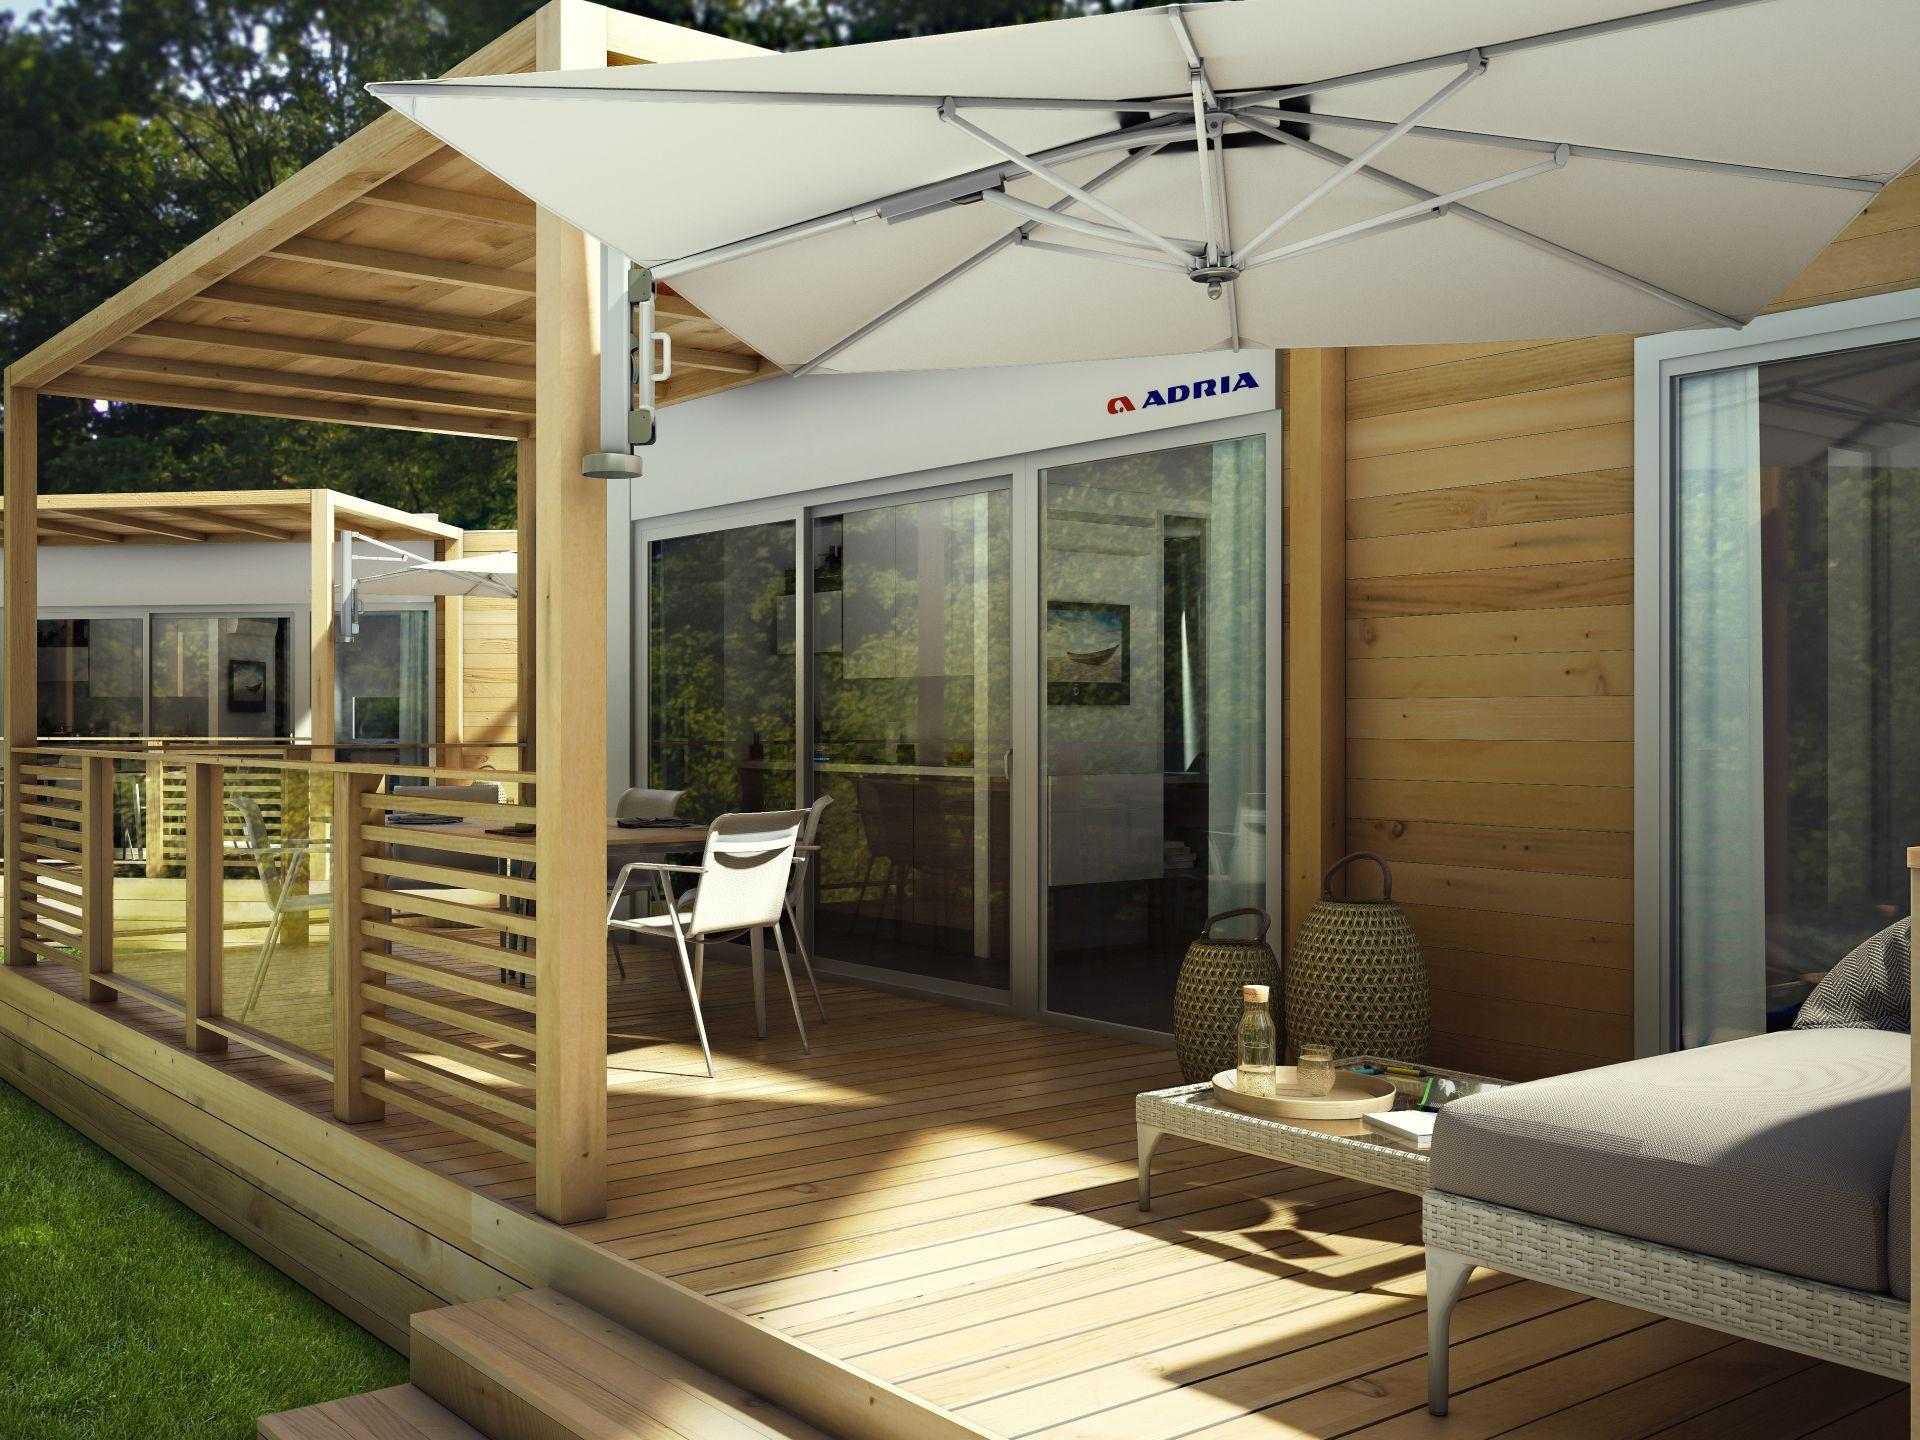 adria mobilehomes about adria the leading european manufacturer of mobile homes modular. Black Bedroom Furniture Sets. Home Design Ideas